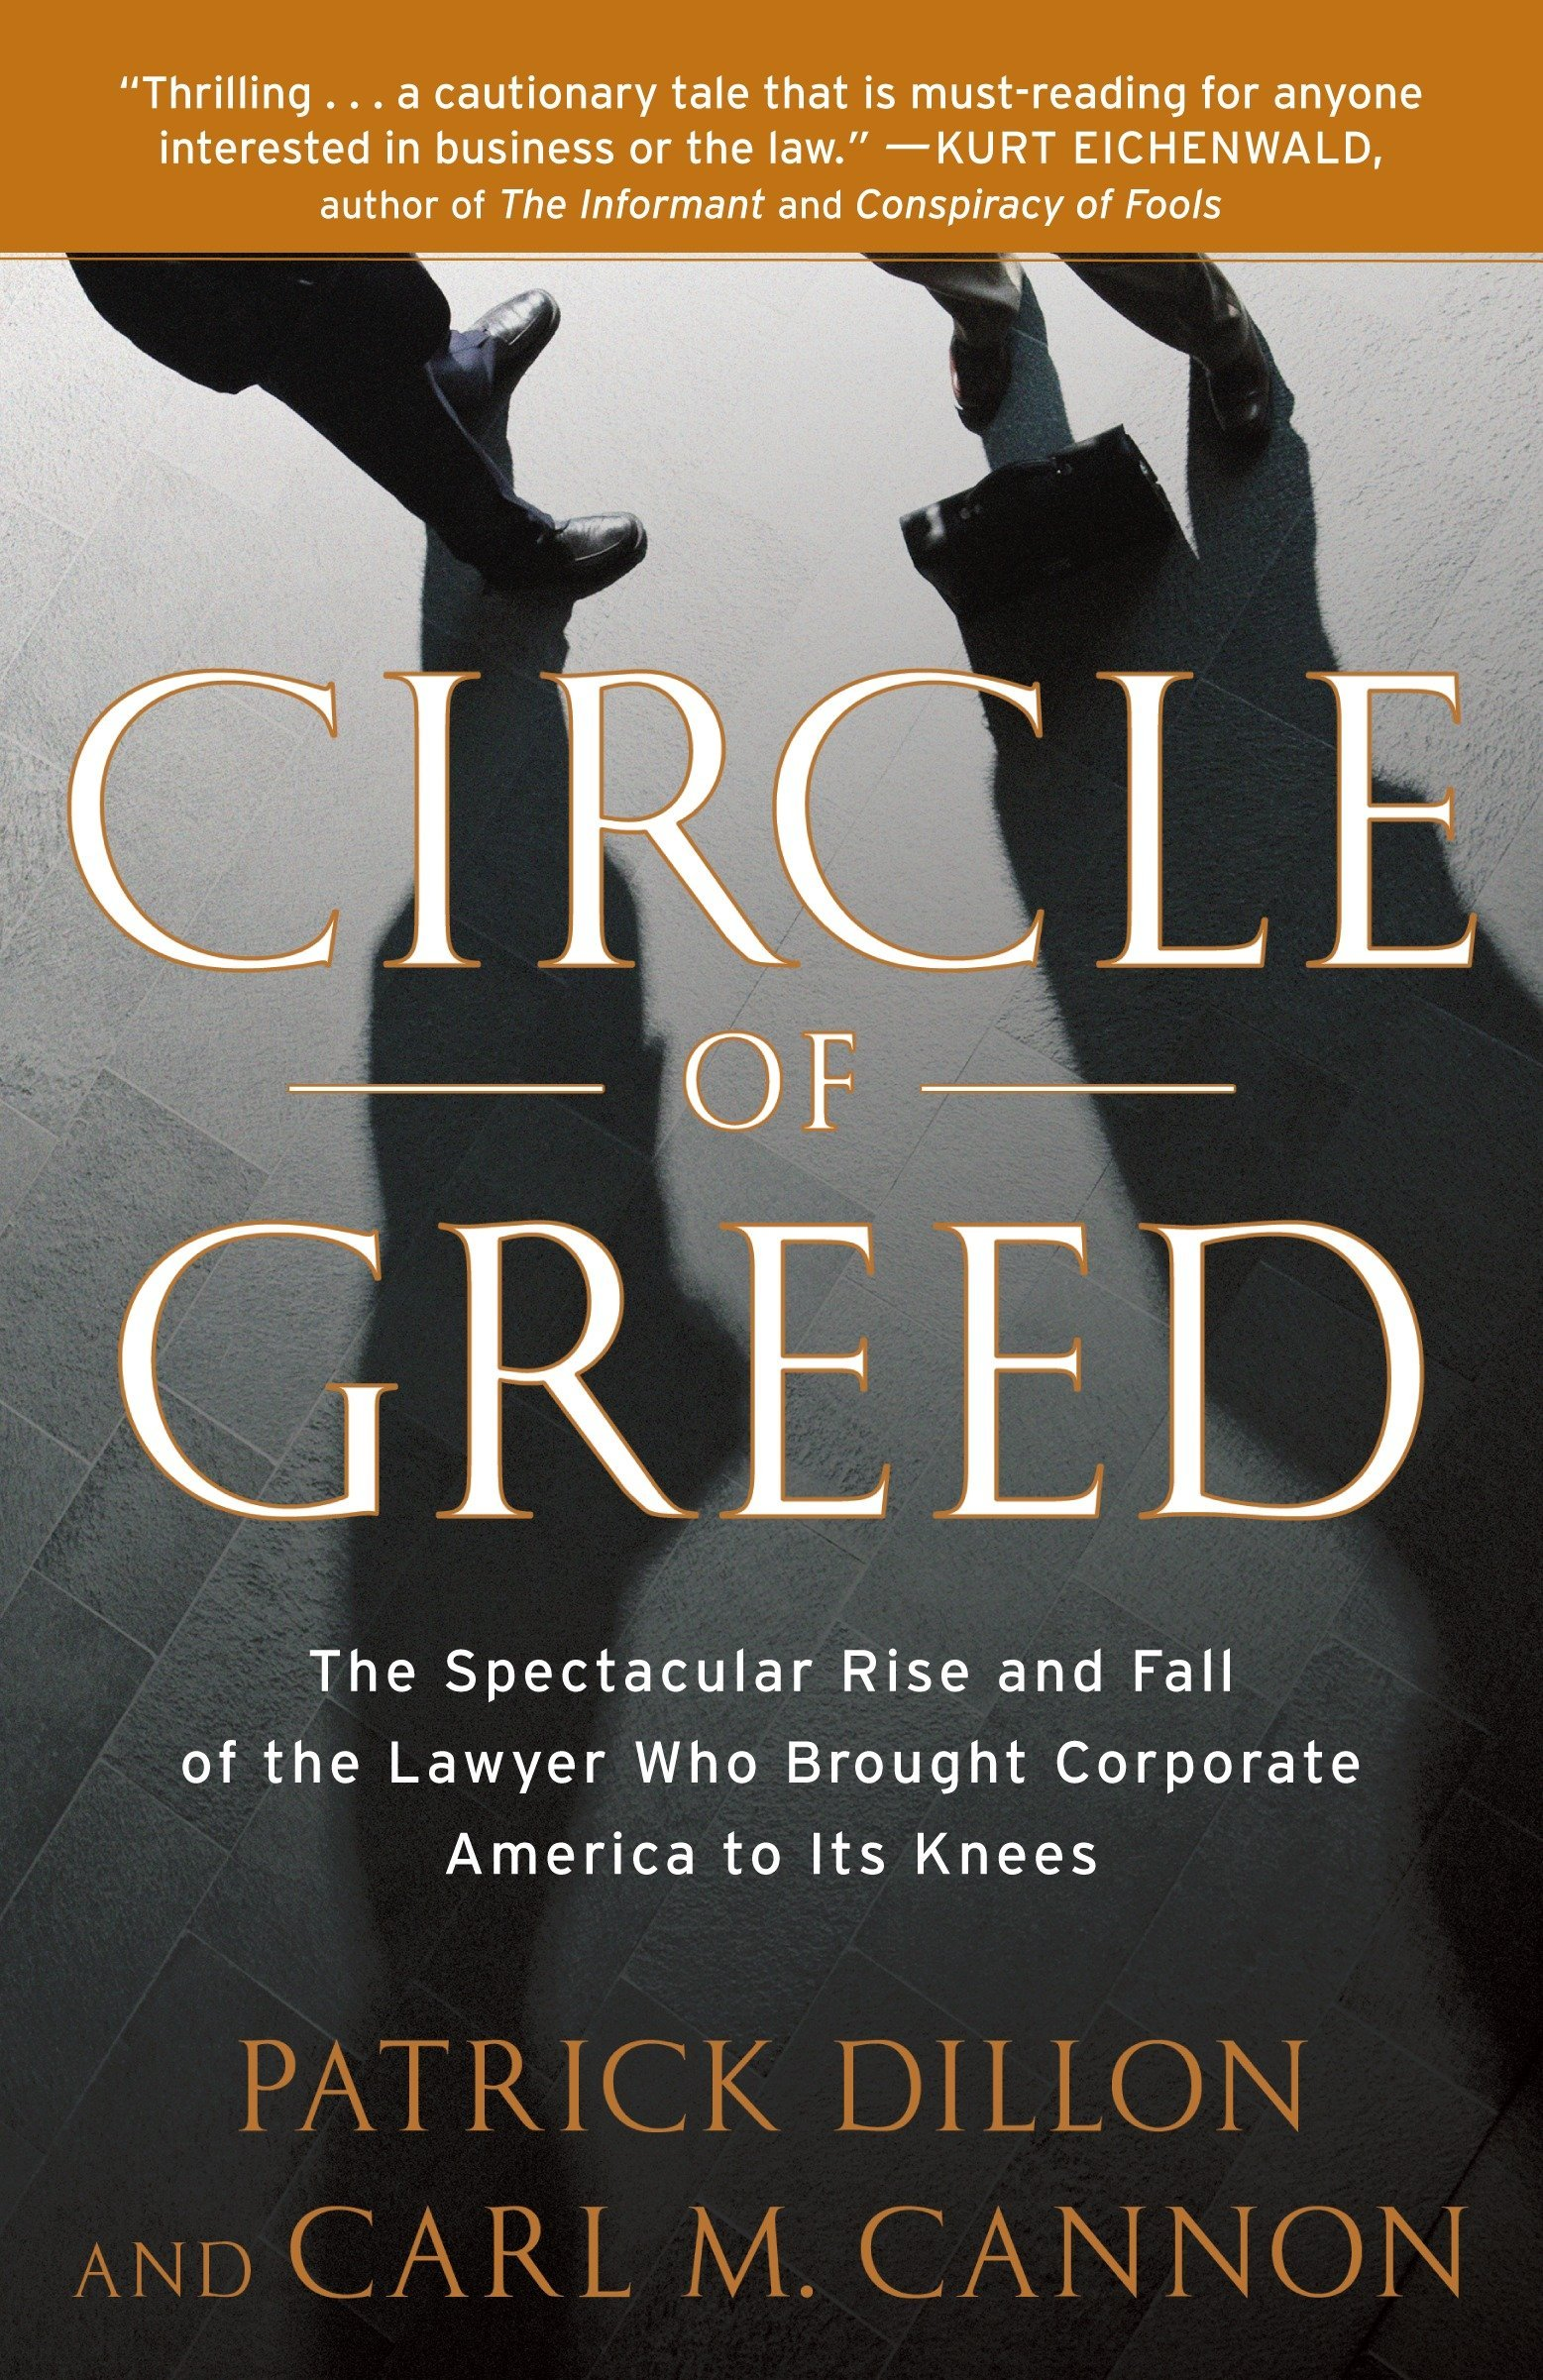 Circle of Greed: The Spectacular Rise and Fall of the Lawyer Who Brought Corporate America to Its Knees ebook